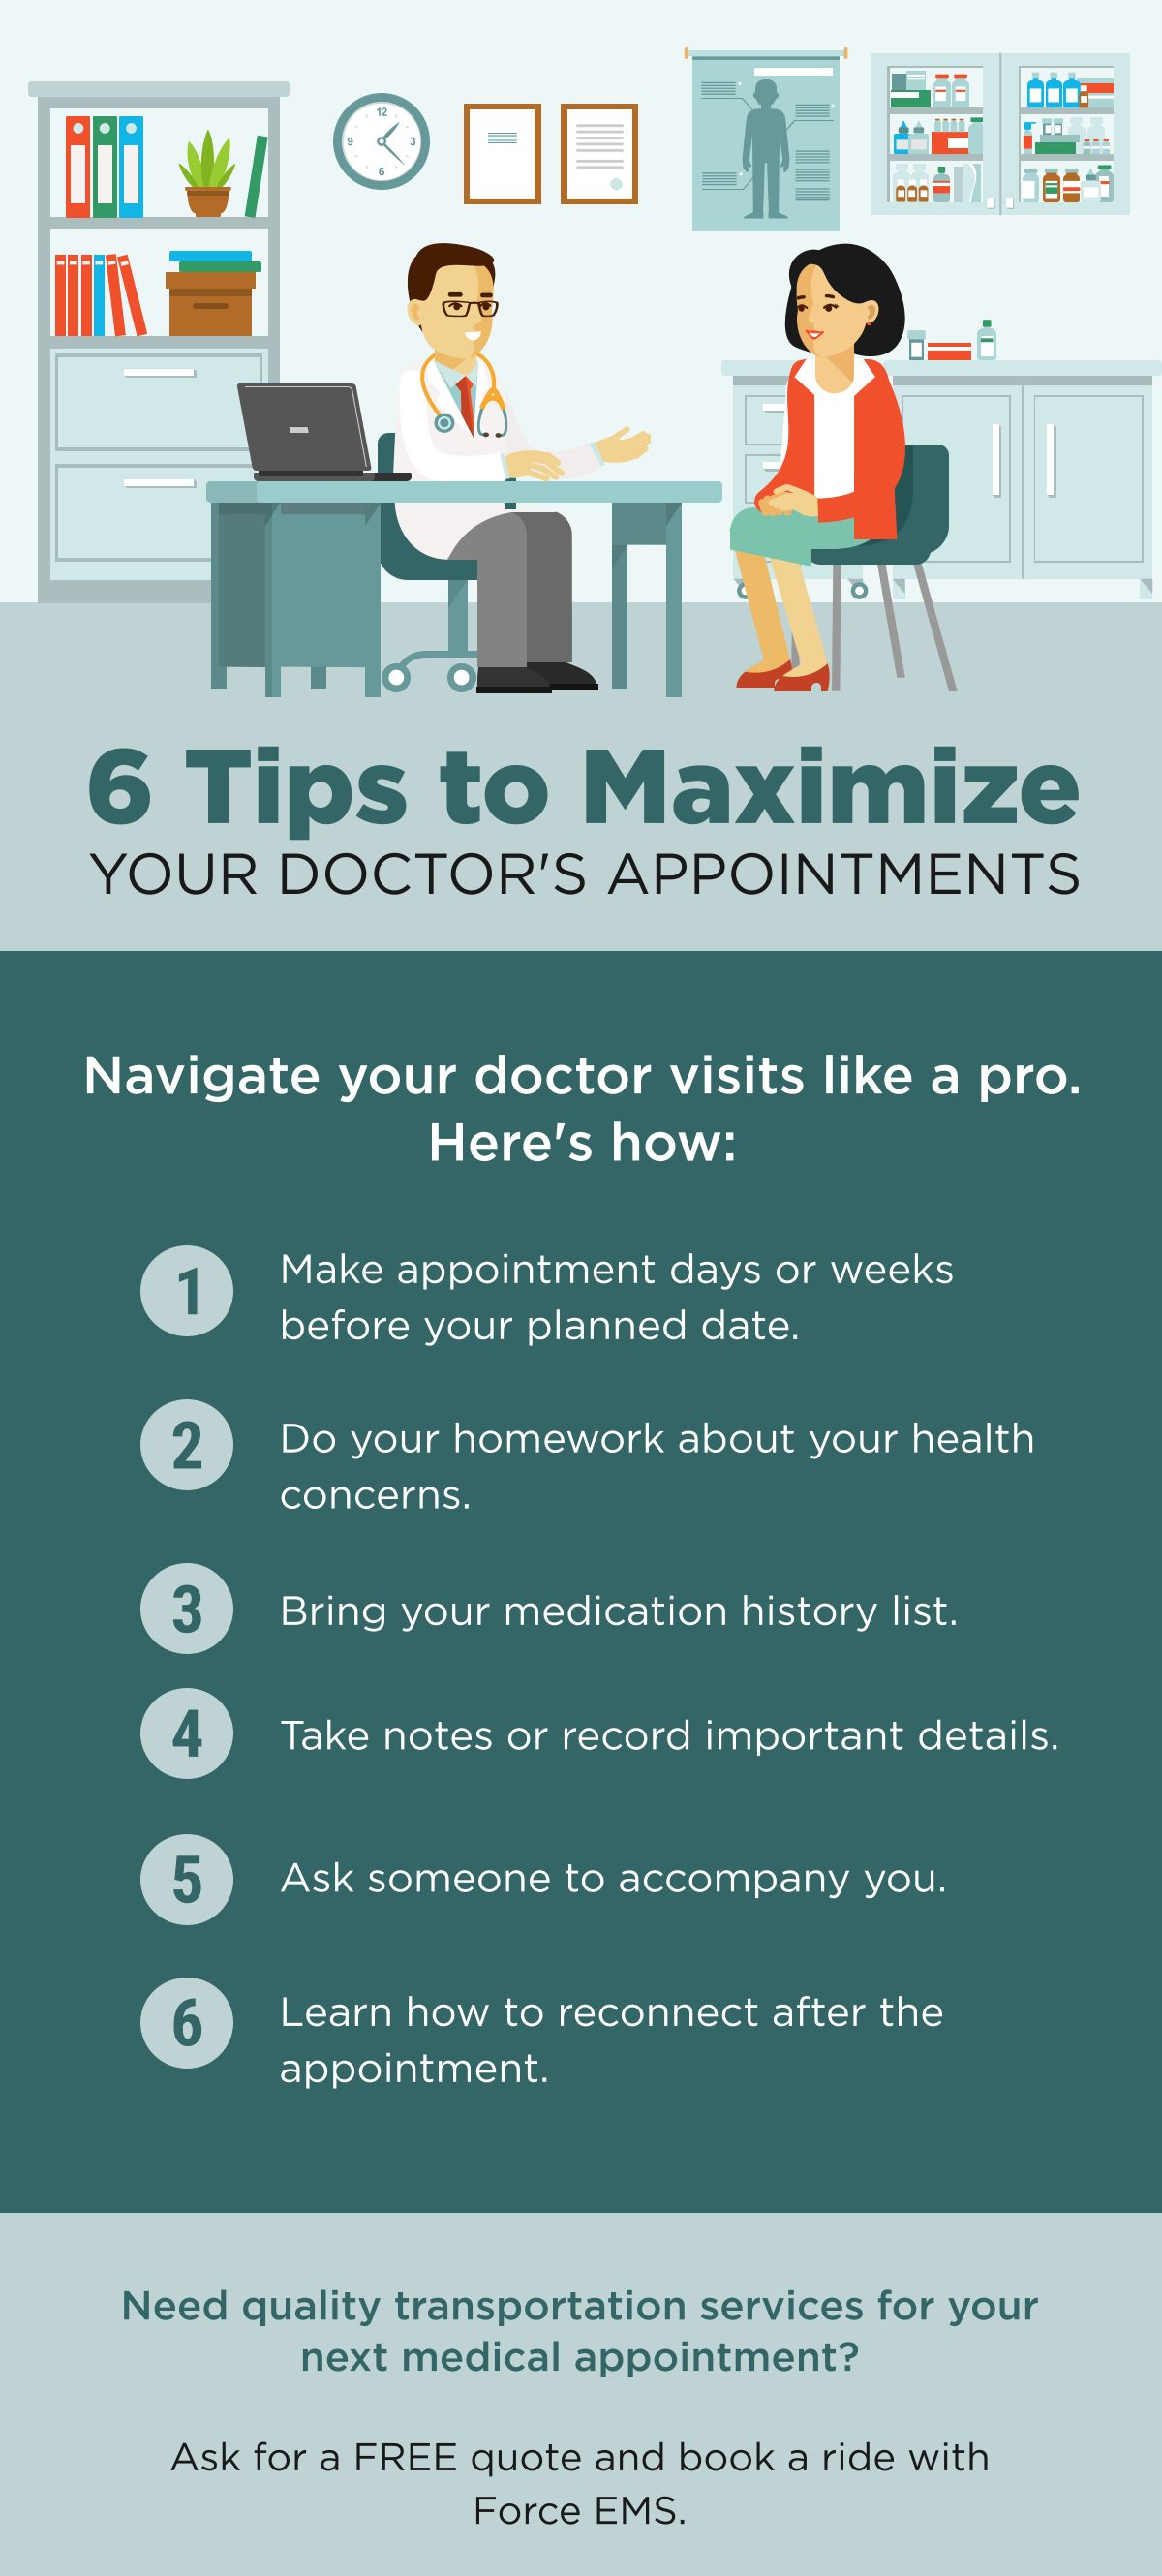 6 Tips to Maximize Your Doctor's Appointments ForceEMS